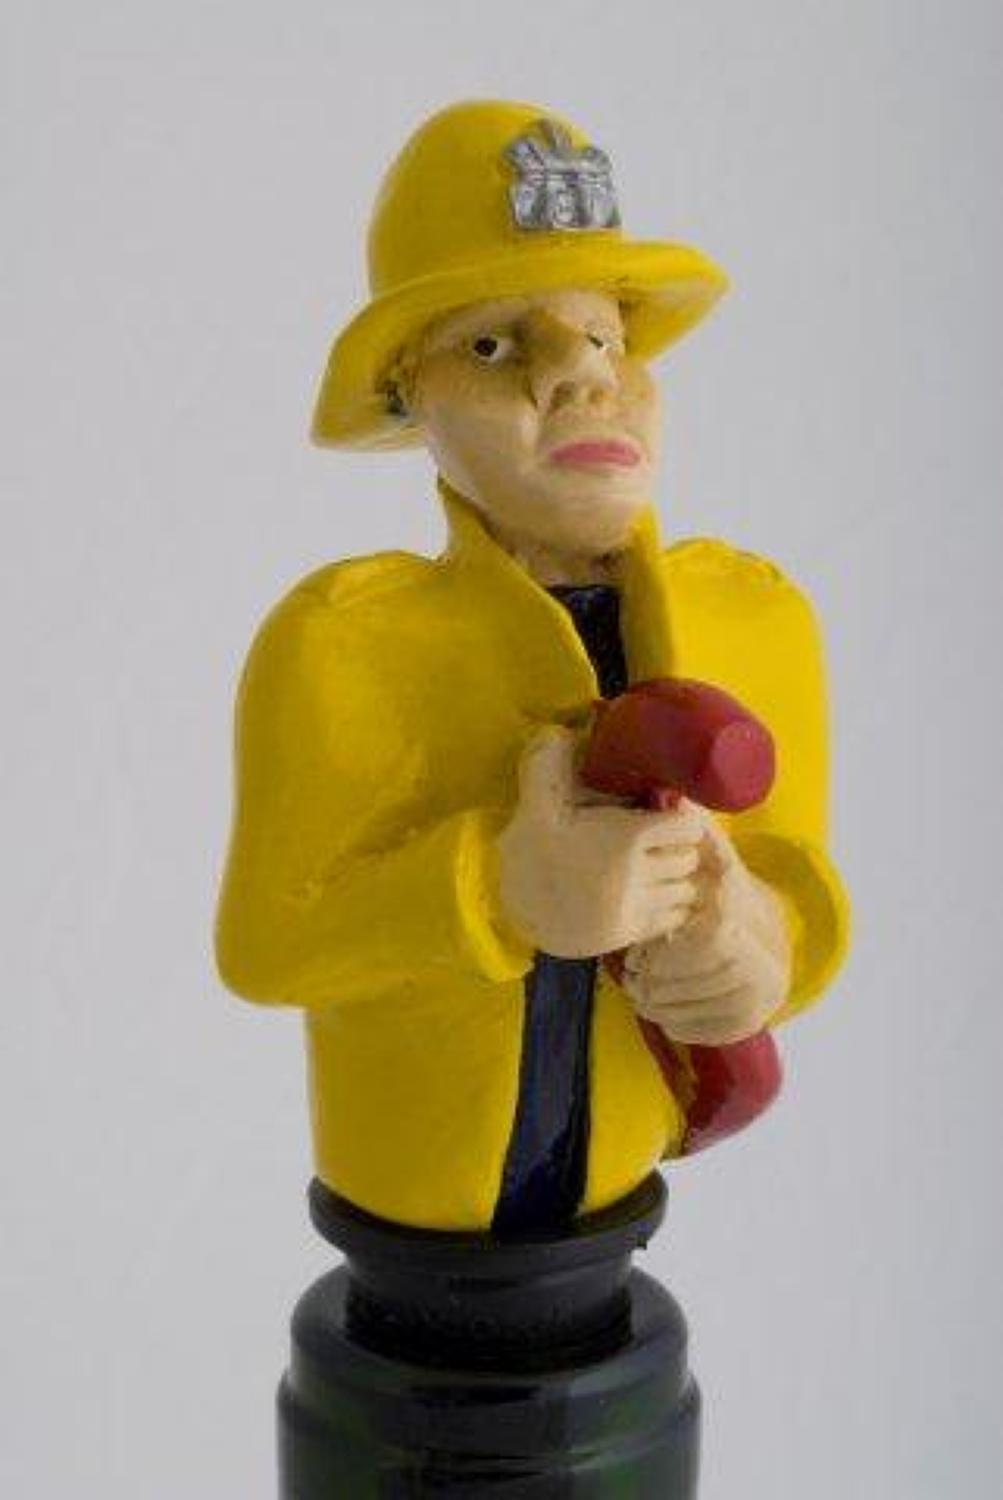 Firefighter bottle stopper